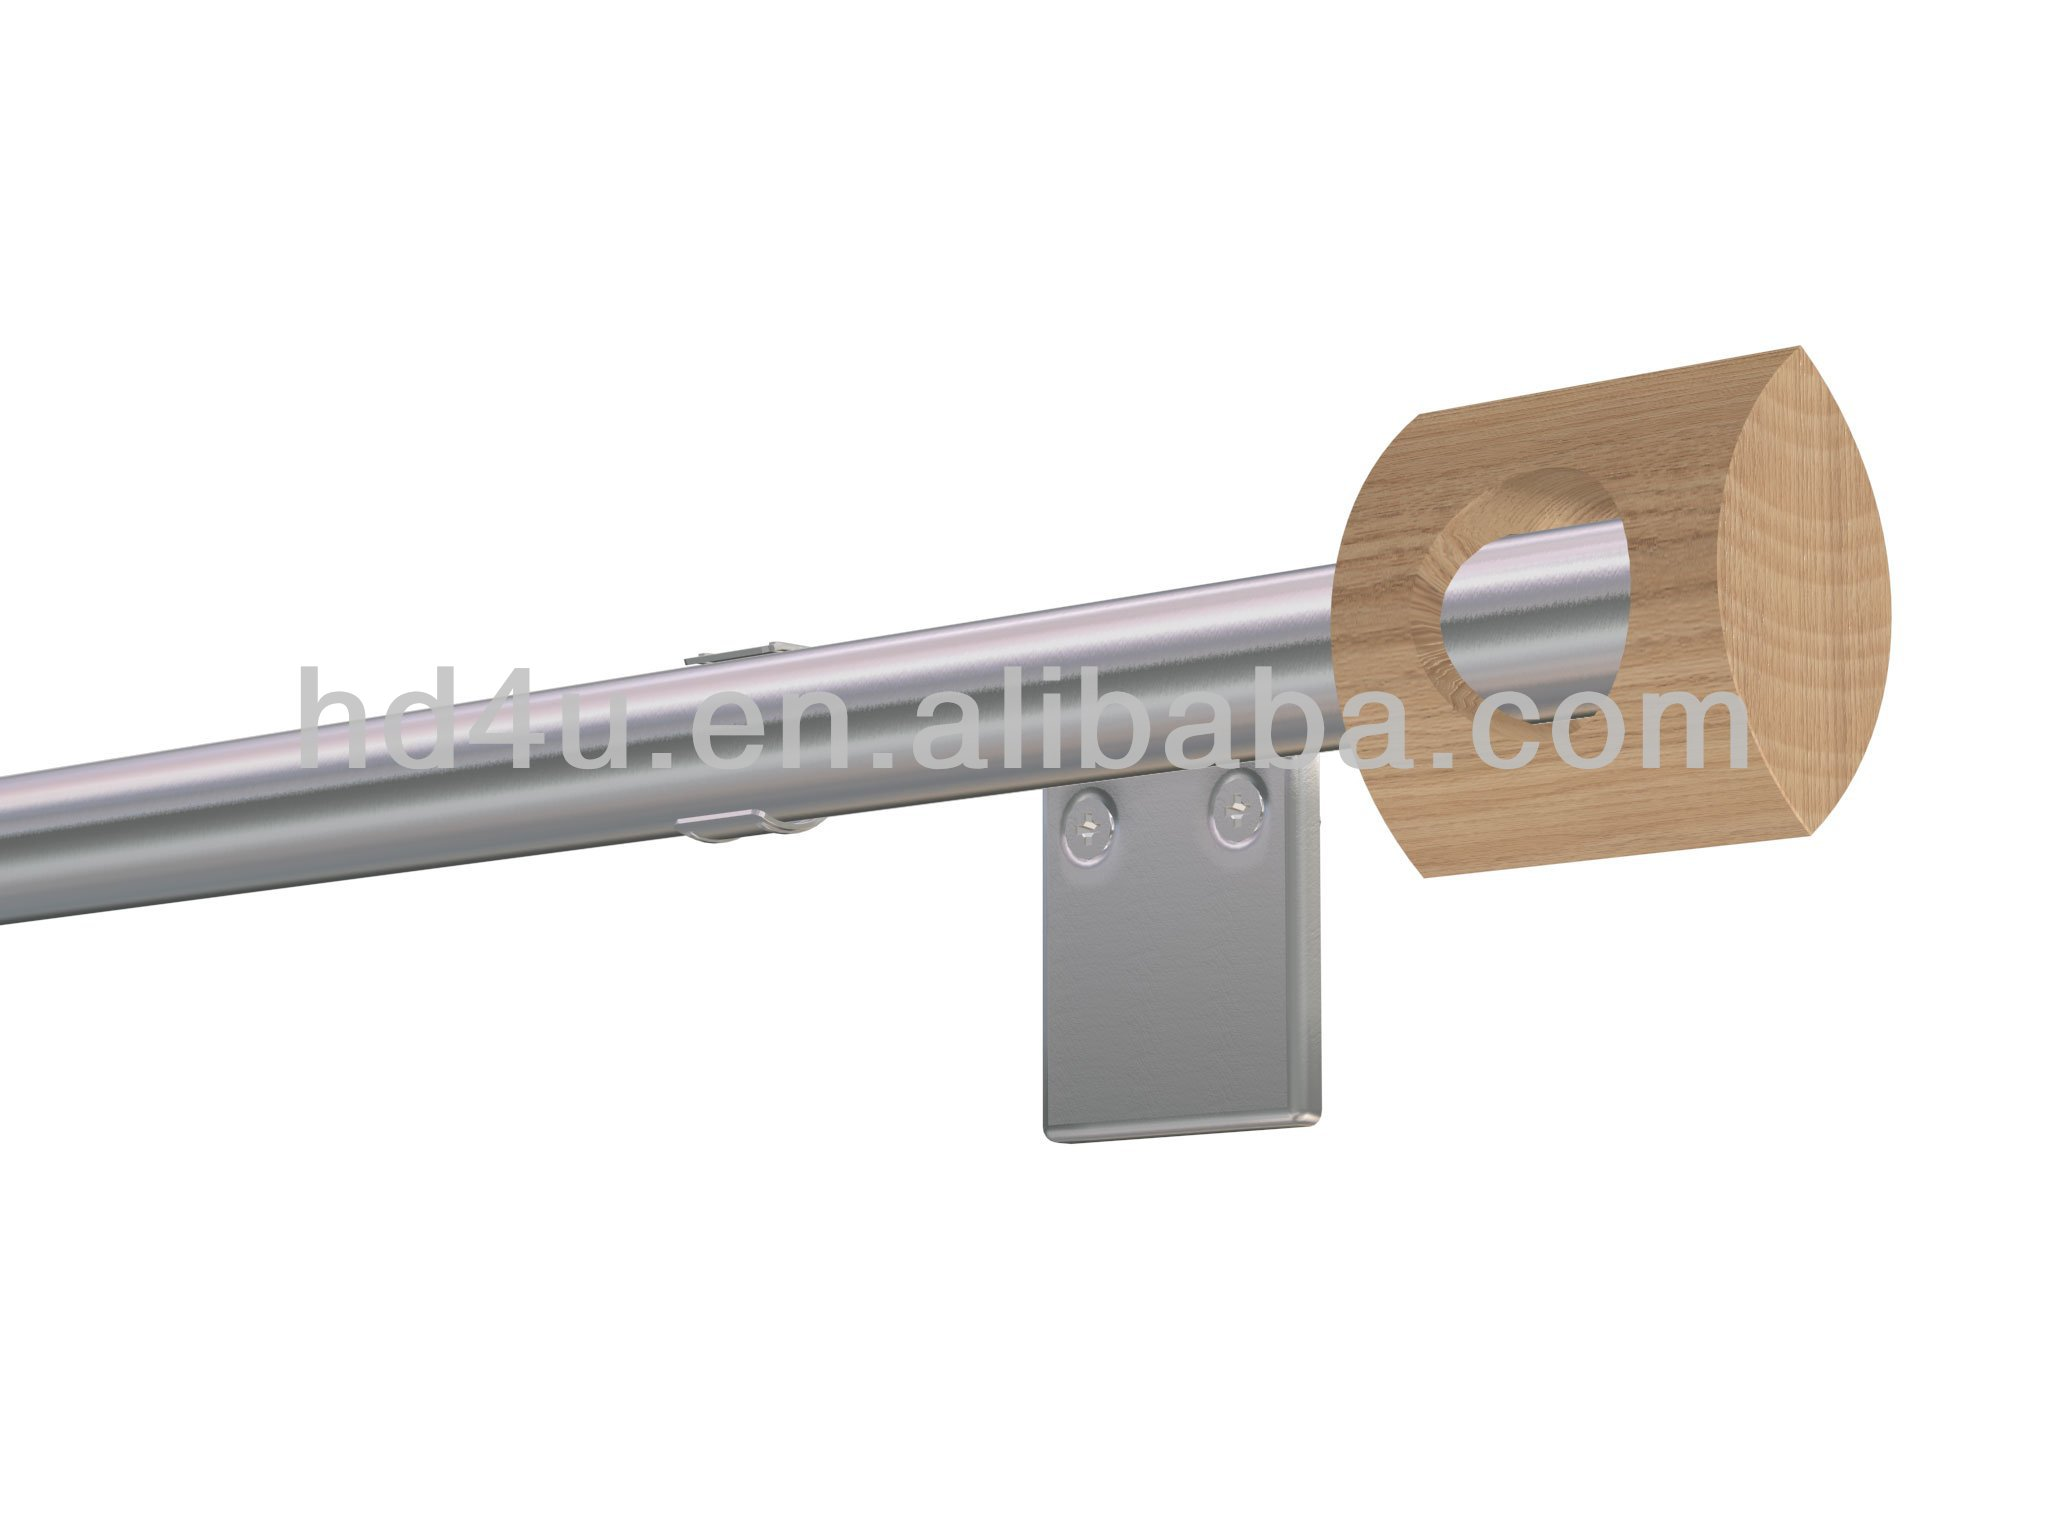 Stainless Steel Curtain Rod, Stainless Steel Curtain Rod Suppliers And  Manufacturers At Alibaba.com